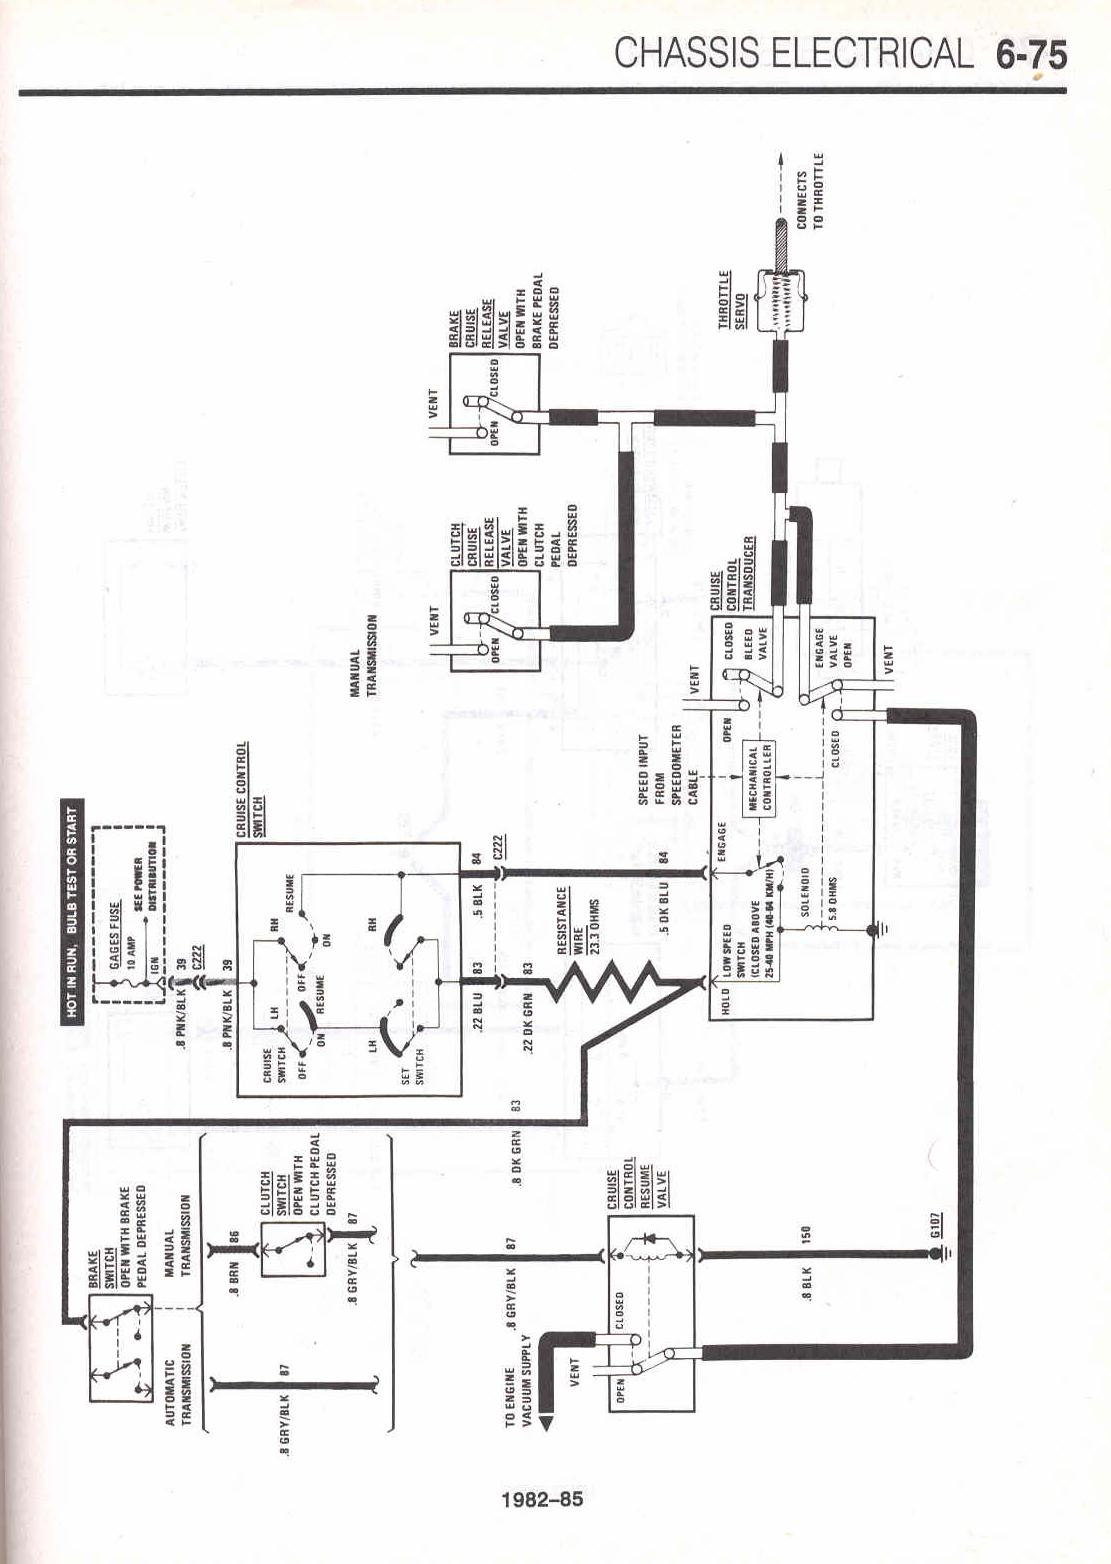 Radio Wiring Diagram For 89 Camaro